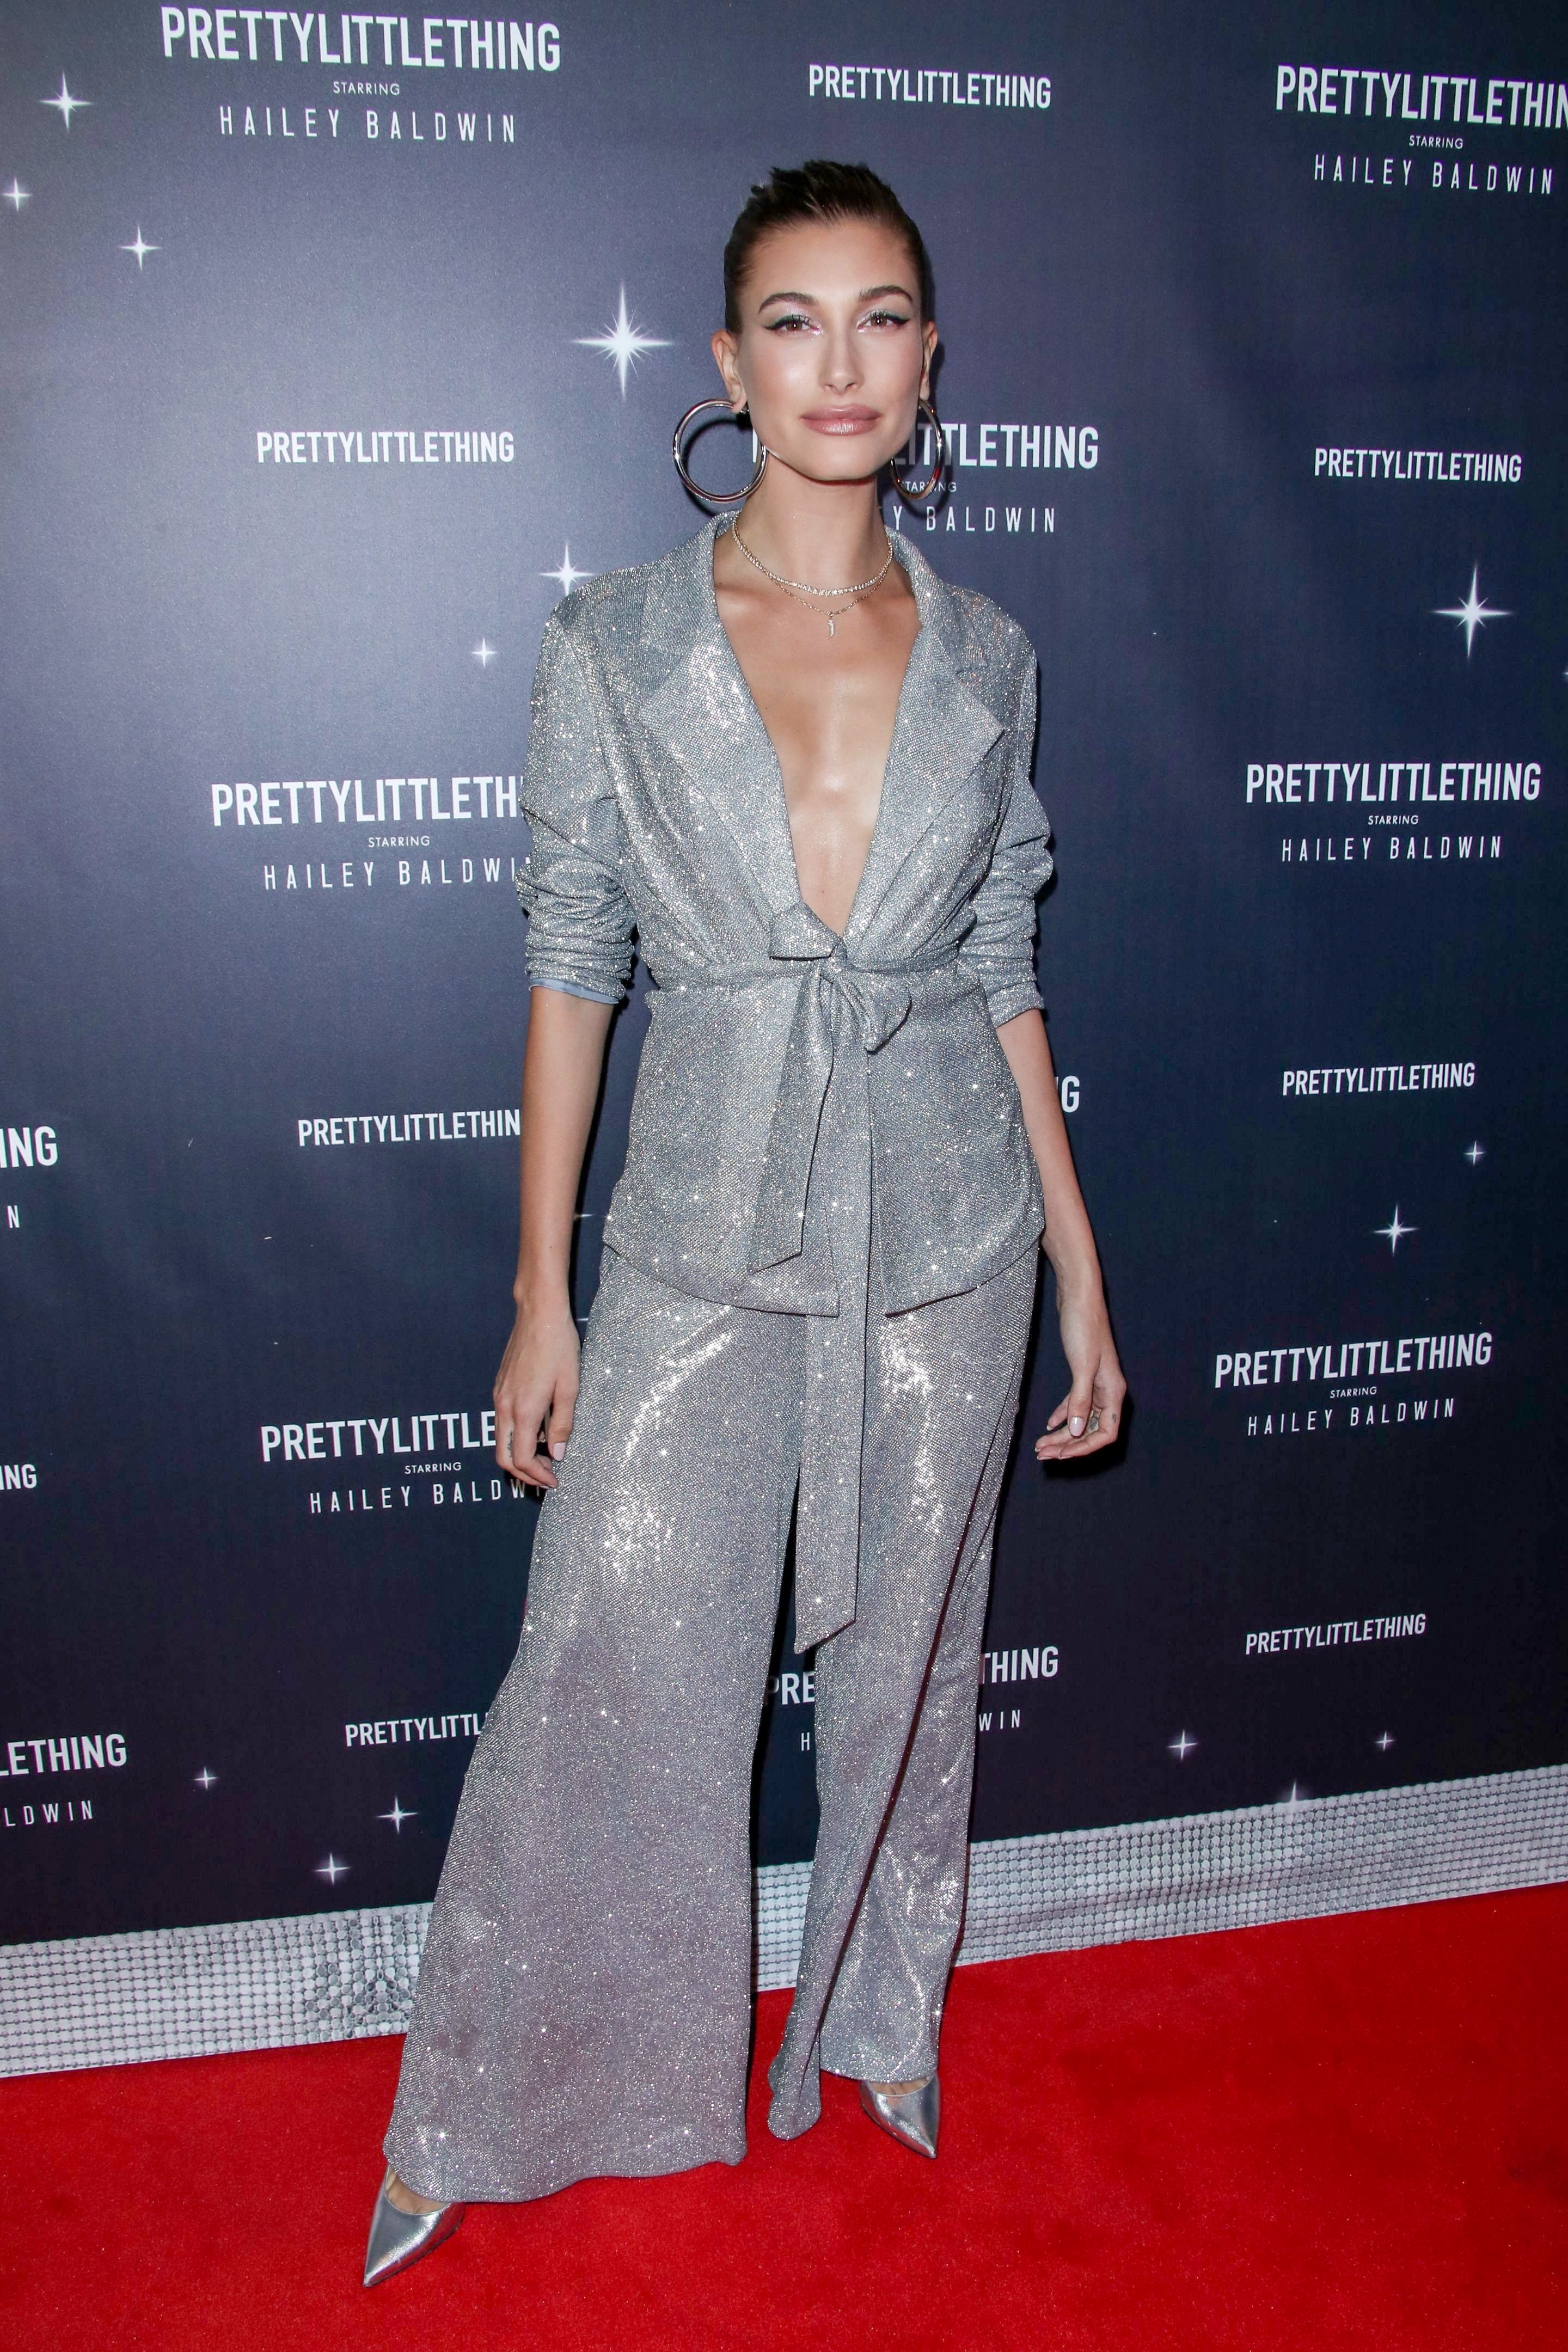 Hailey Baldwin attends the PrettyLittleThing x Hailey Baldwin launch event in Los Angeles on Nov. 5, 2018.